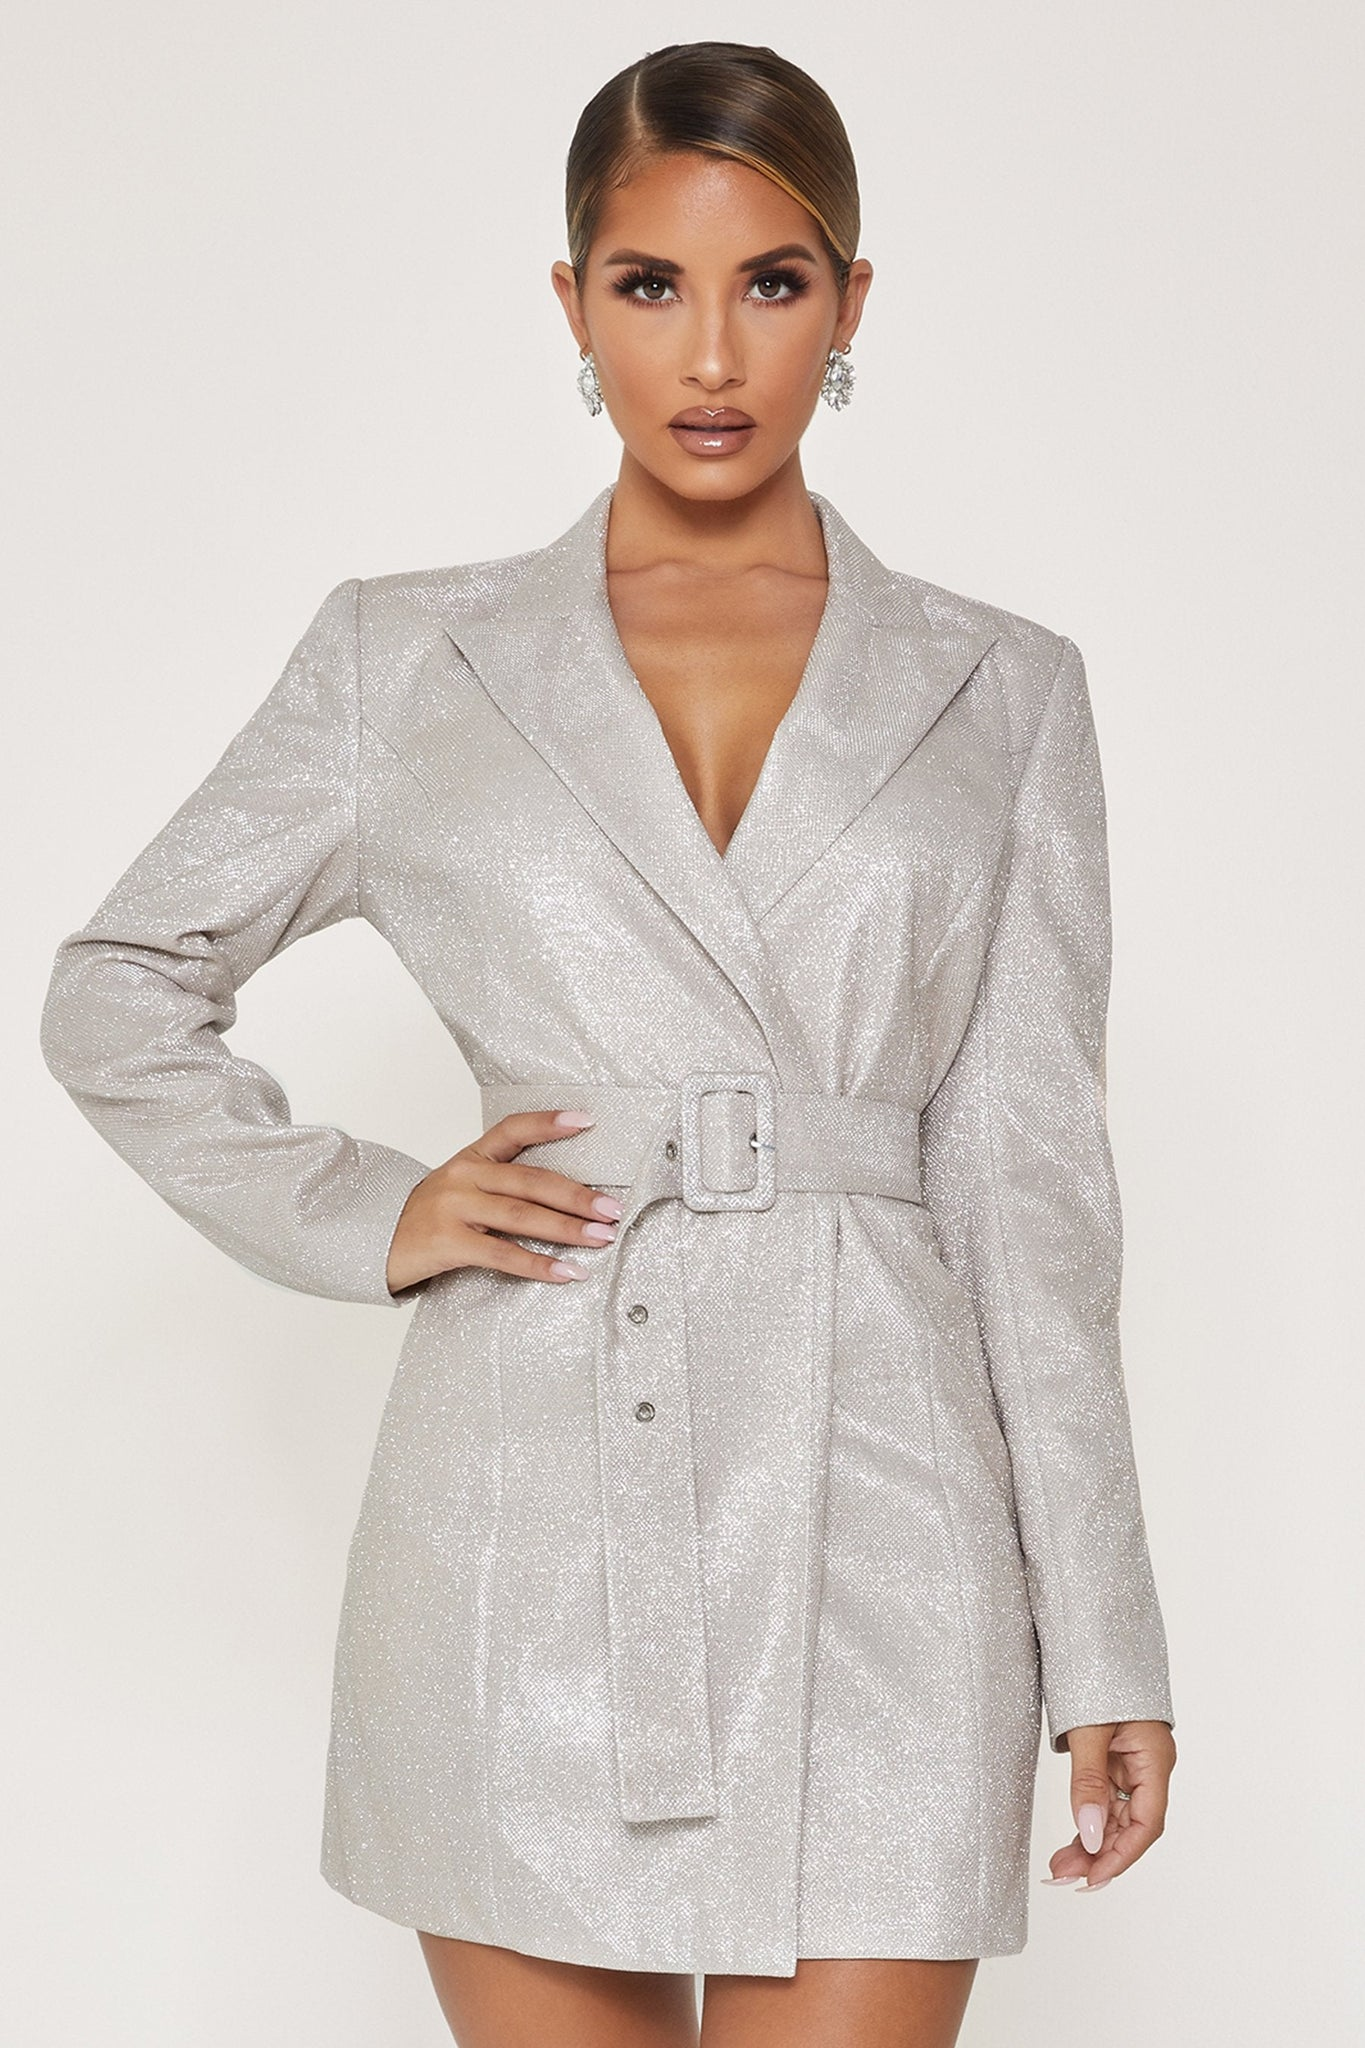 Victoria Double Breasted Blazer Dress - Silver - MESHKI